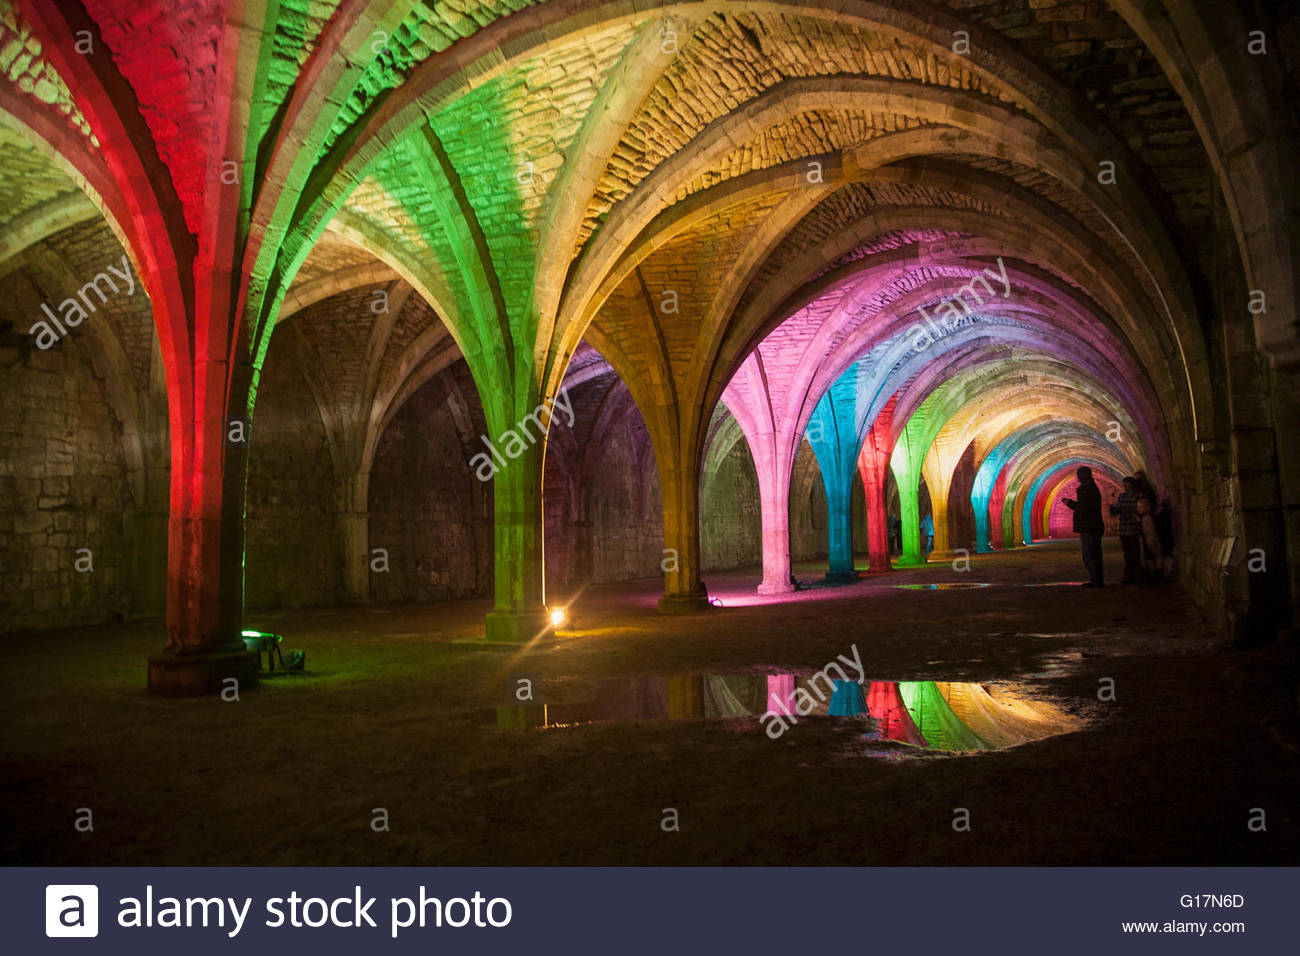 Cellarium, Fountains Abbey, Ripon, Yorkshire Stockbild